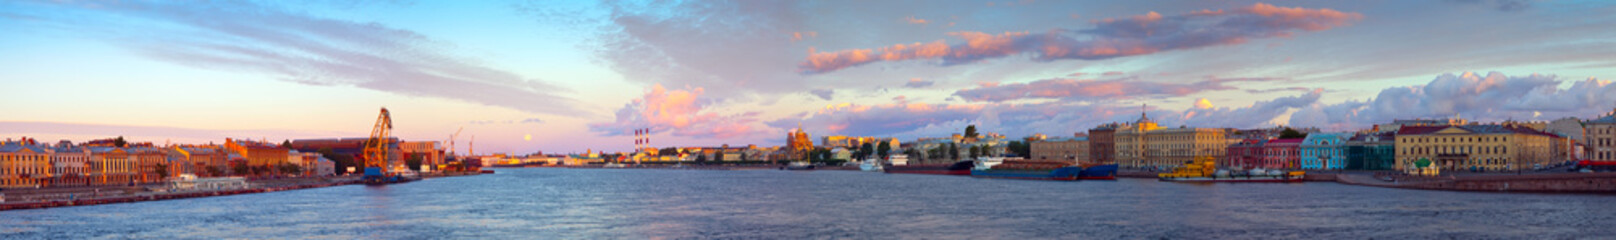 Panorama of Neva river in morning. Saint Petersburg